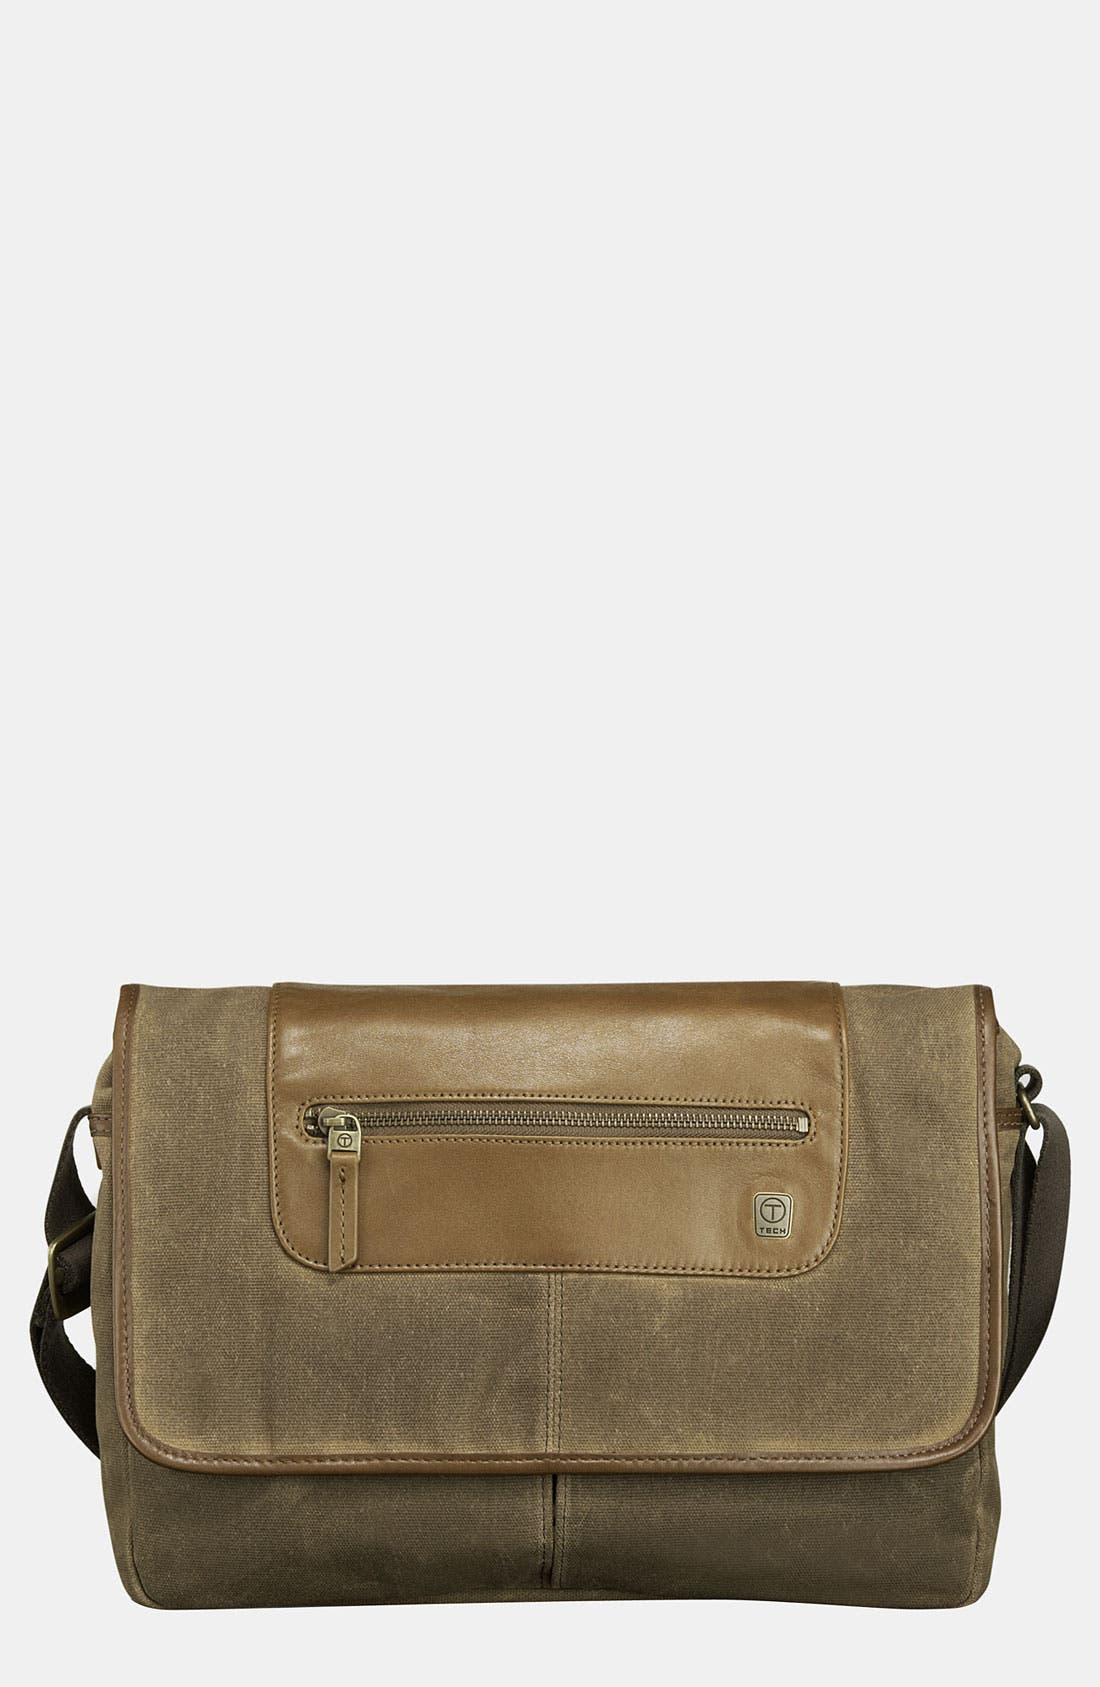 Alternate Image 1 Selected - T-Tech by Tumi 'Forge Allegheny' Messenger Bag